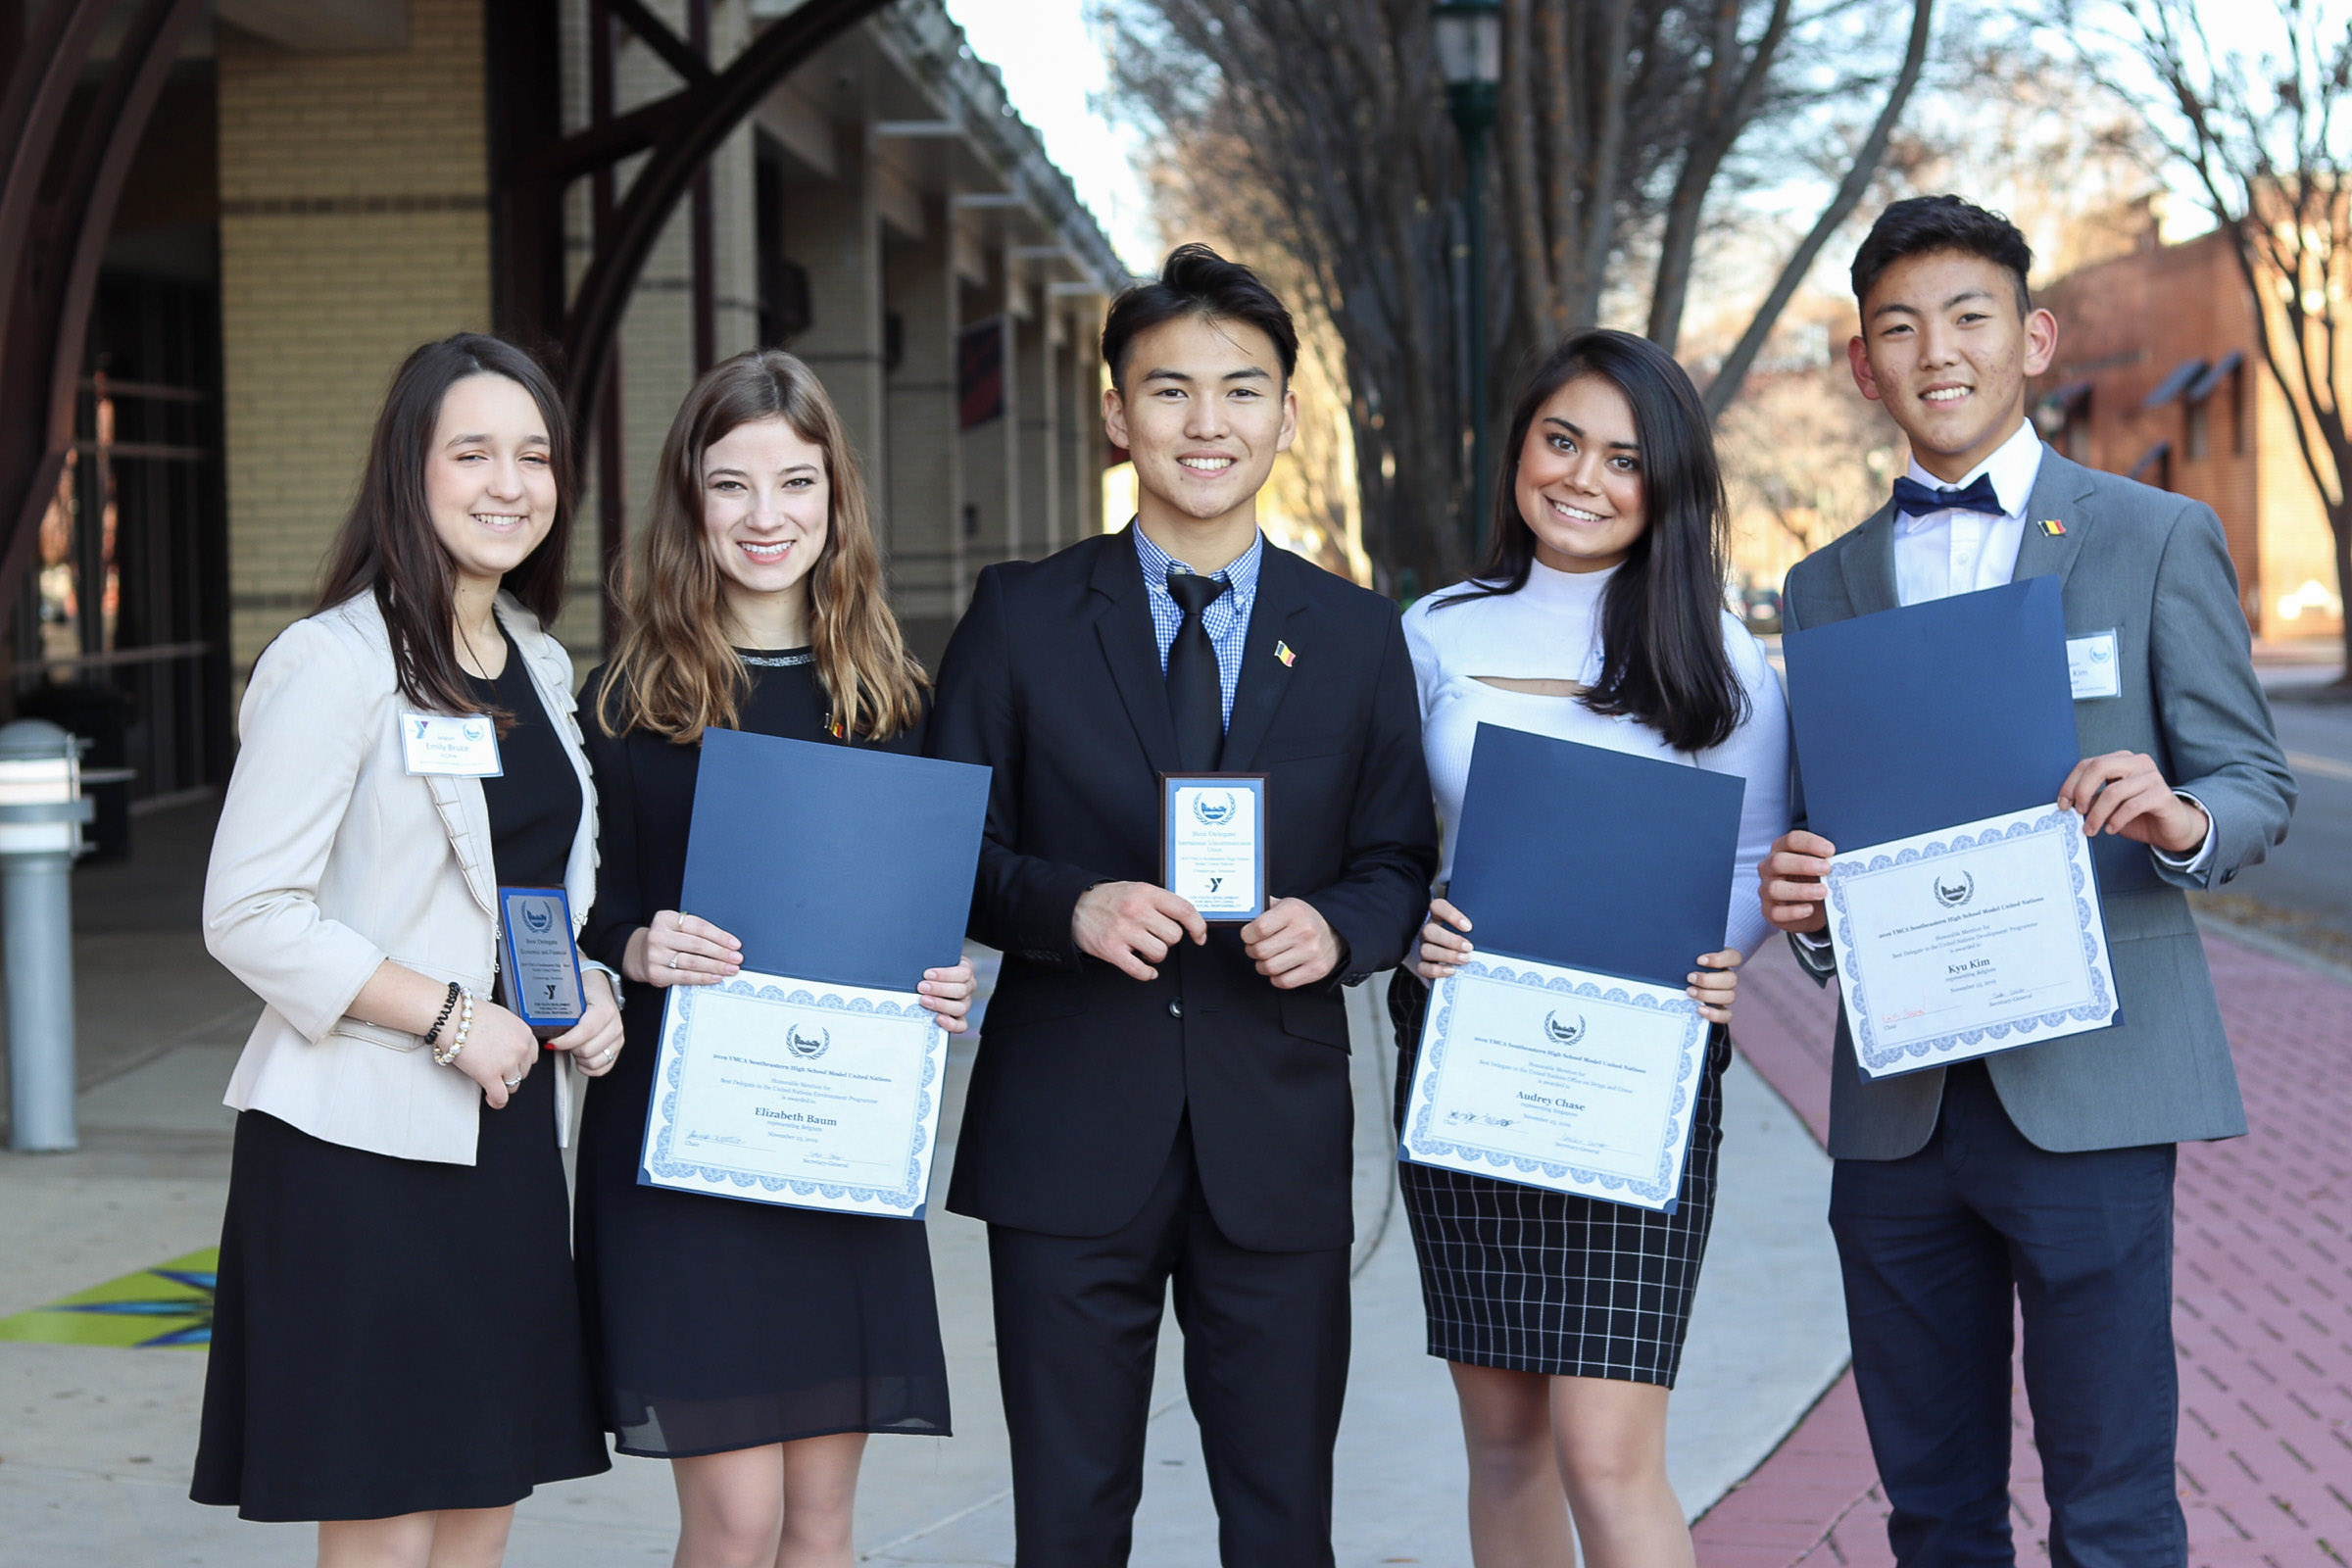 This past weekend, Siegel Model UN was the only Rutherford County School competing at the Southeastern High School Model United Nations Conference (SHSMUN) against 650 students representing over 70 country delegations.